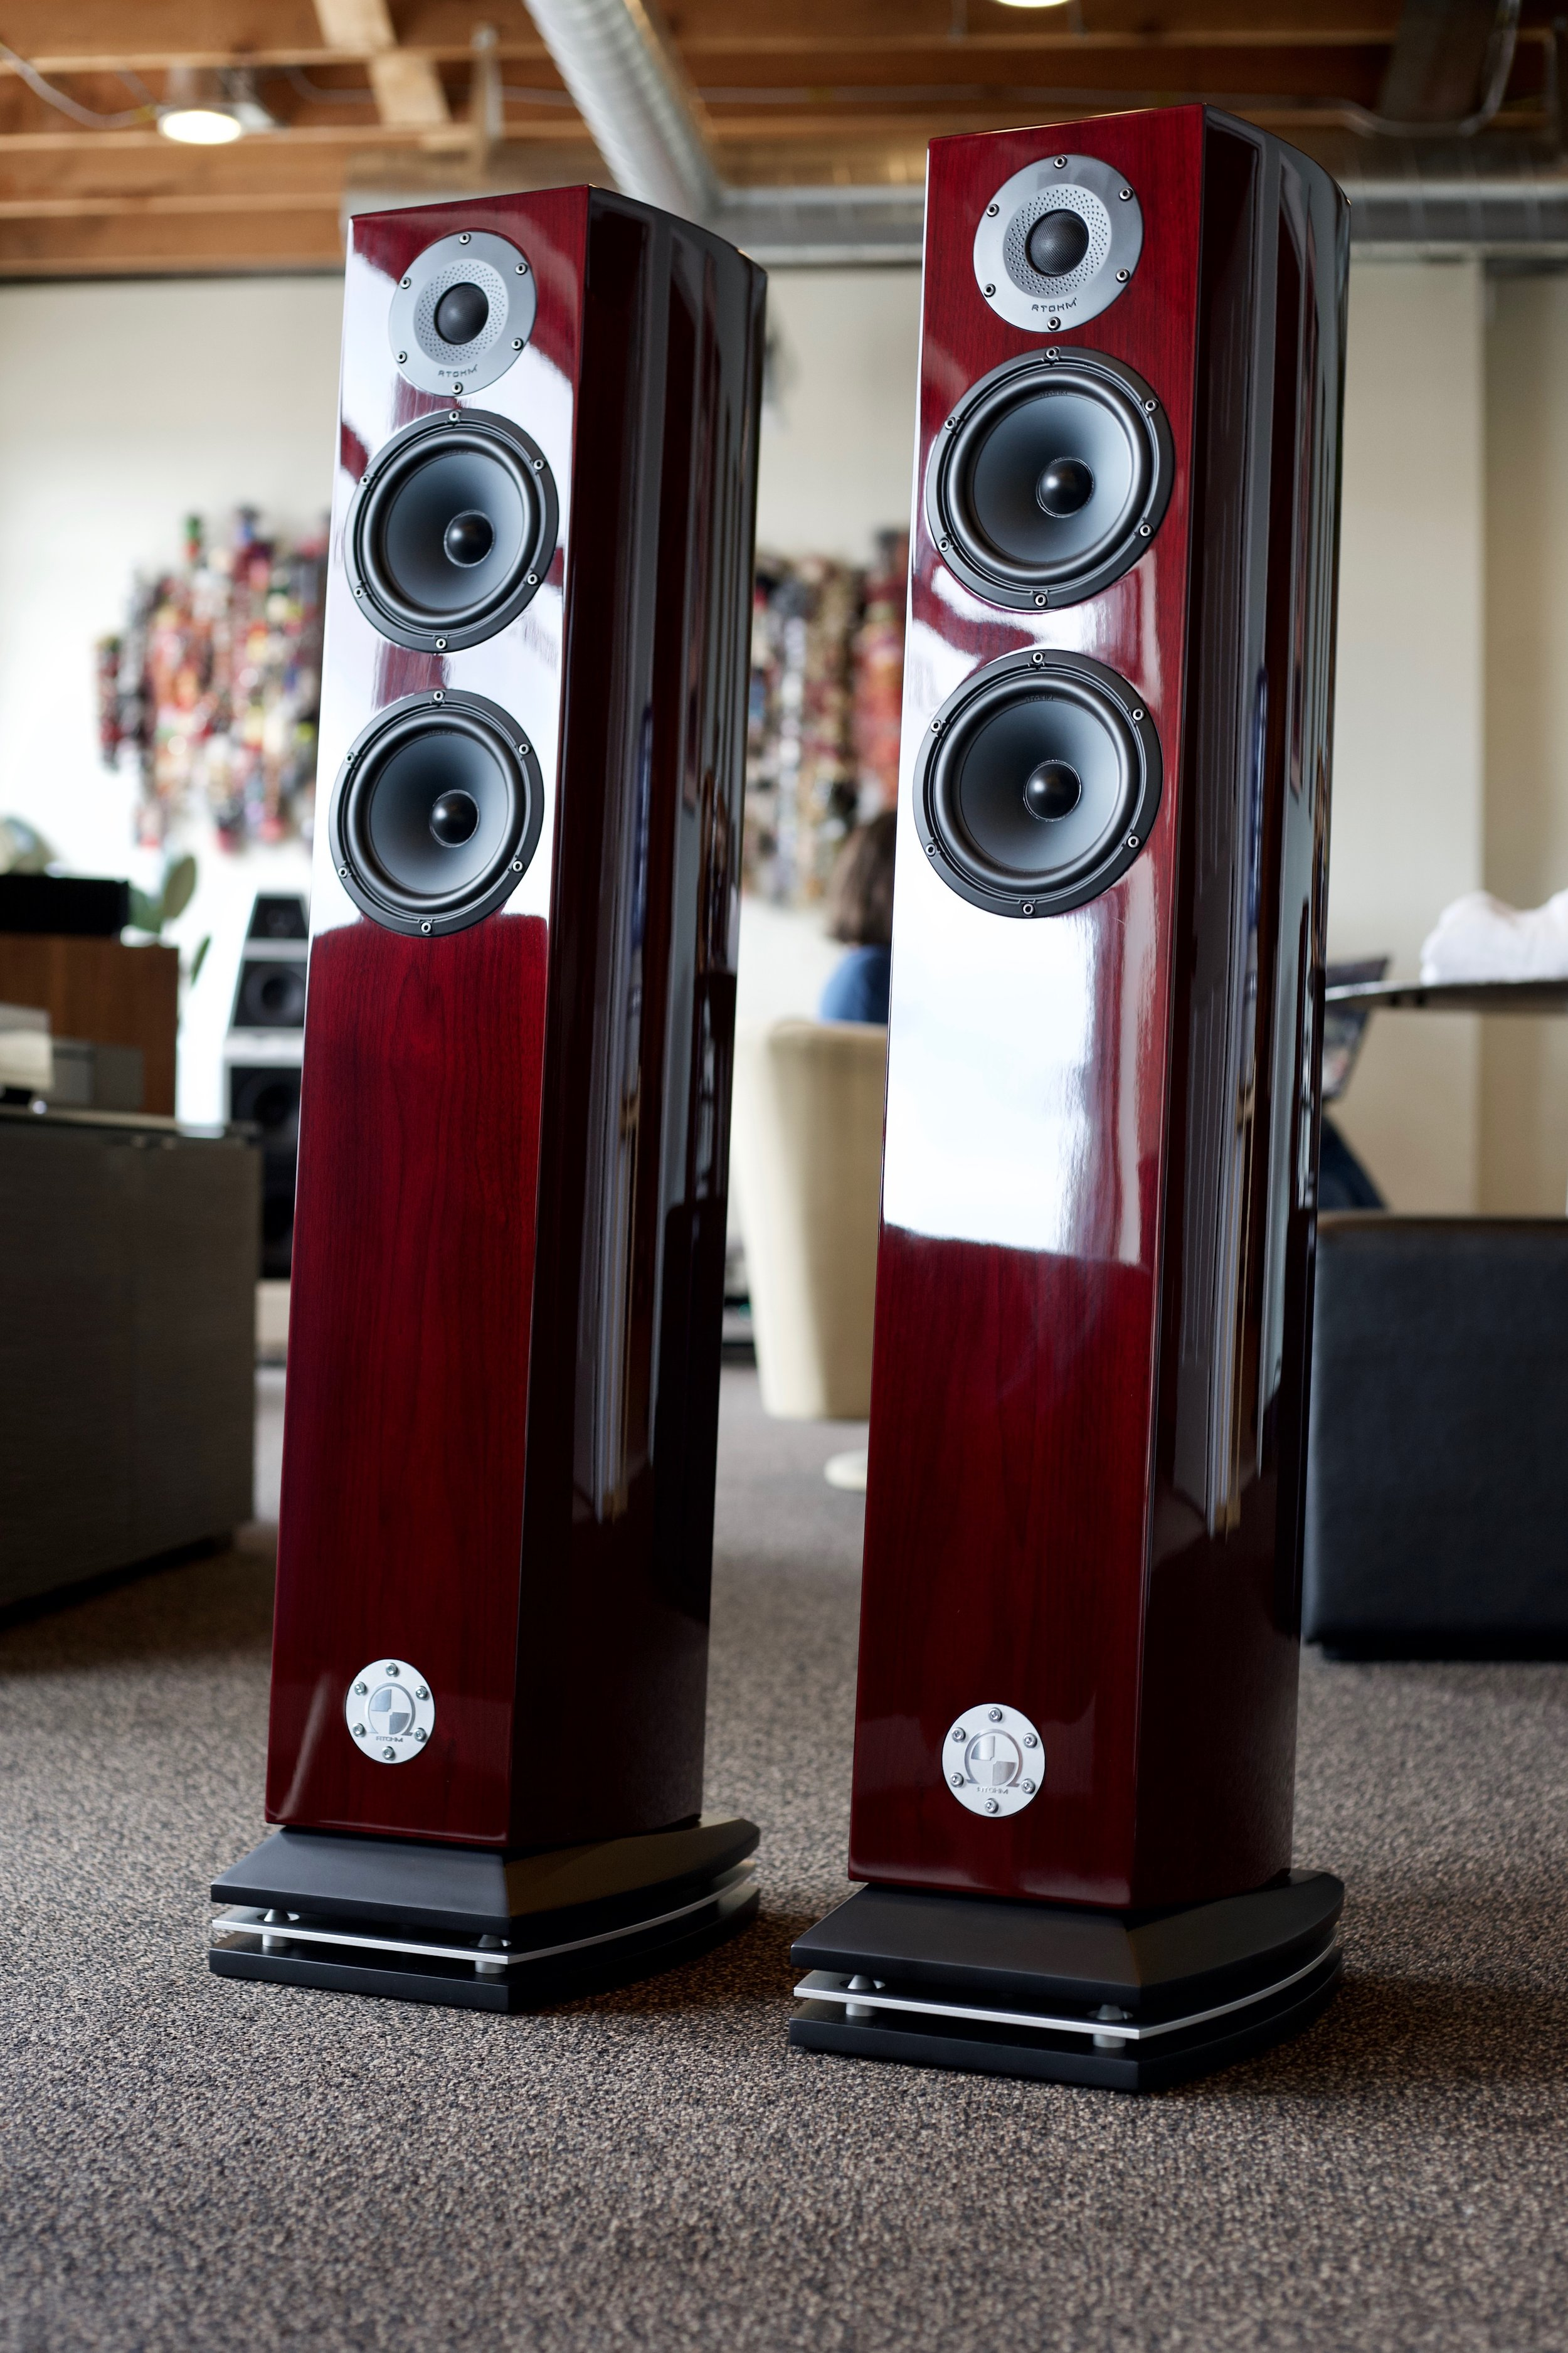 Atohm GT2 HD   Beautiful finish floor standing speakers with glorious sound. Great flexibility in placement with the down-firing port, and great resolution to get the most out of your recordings.   Come on in and check them out!